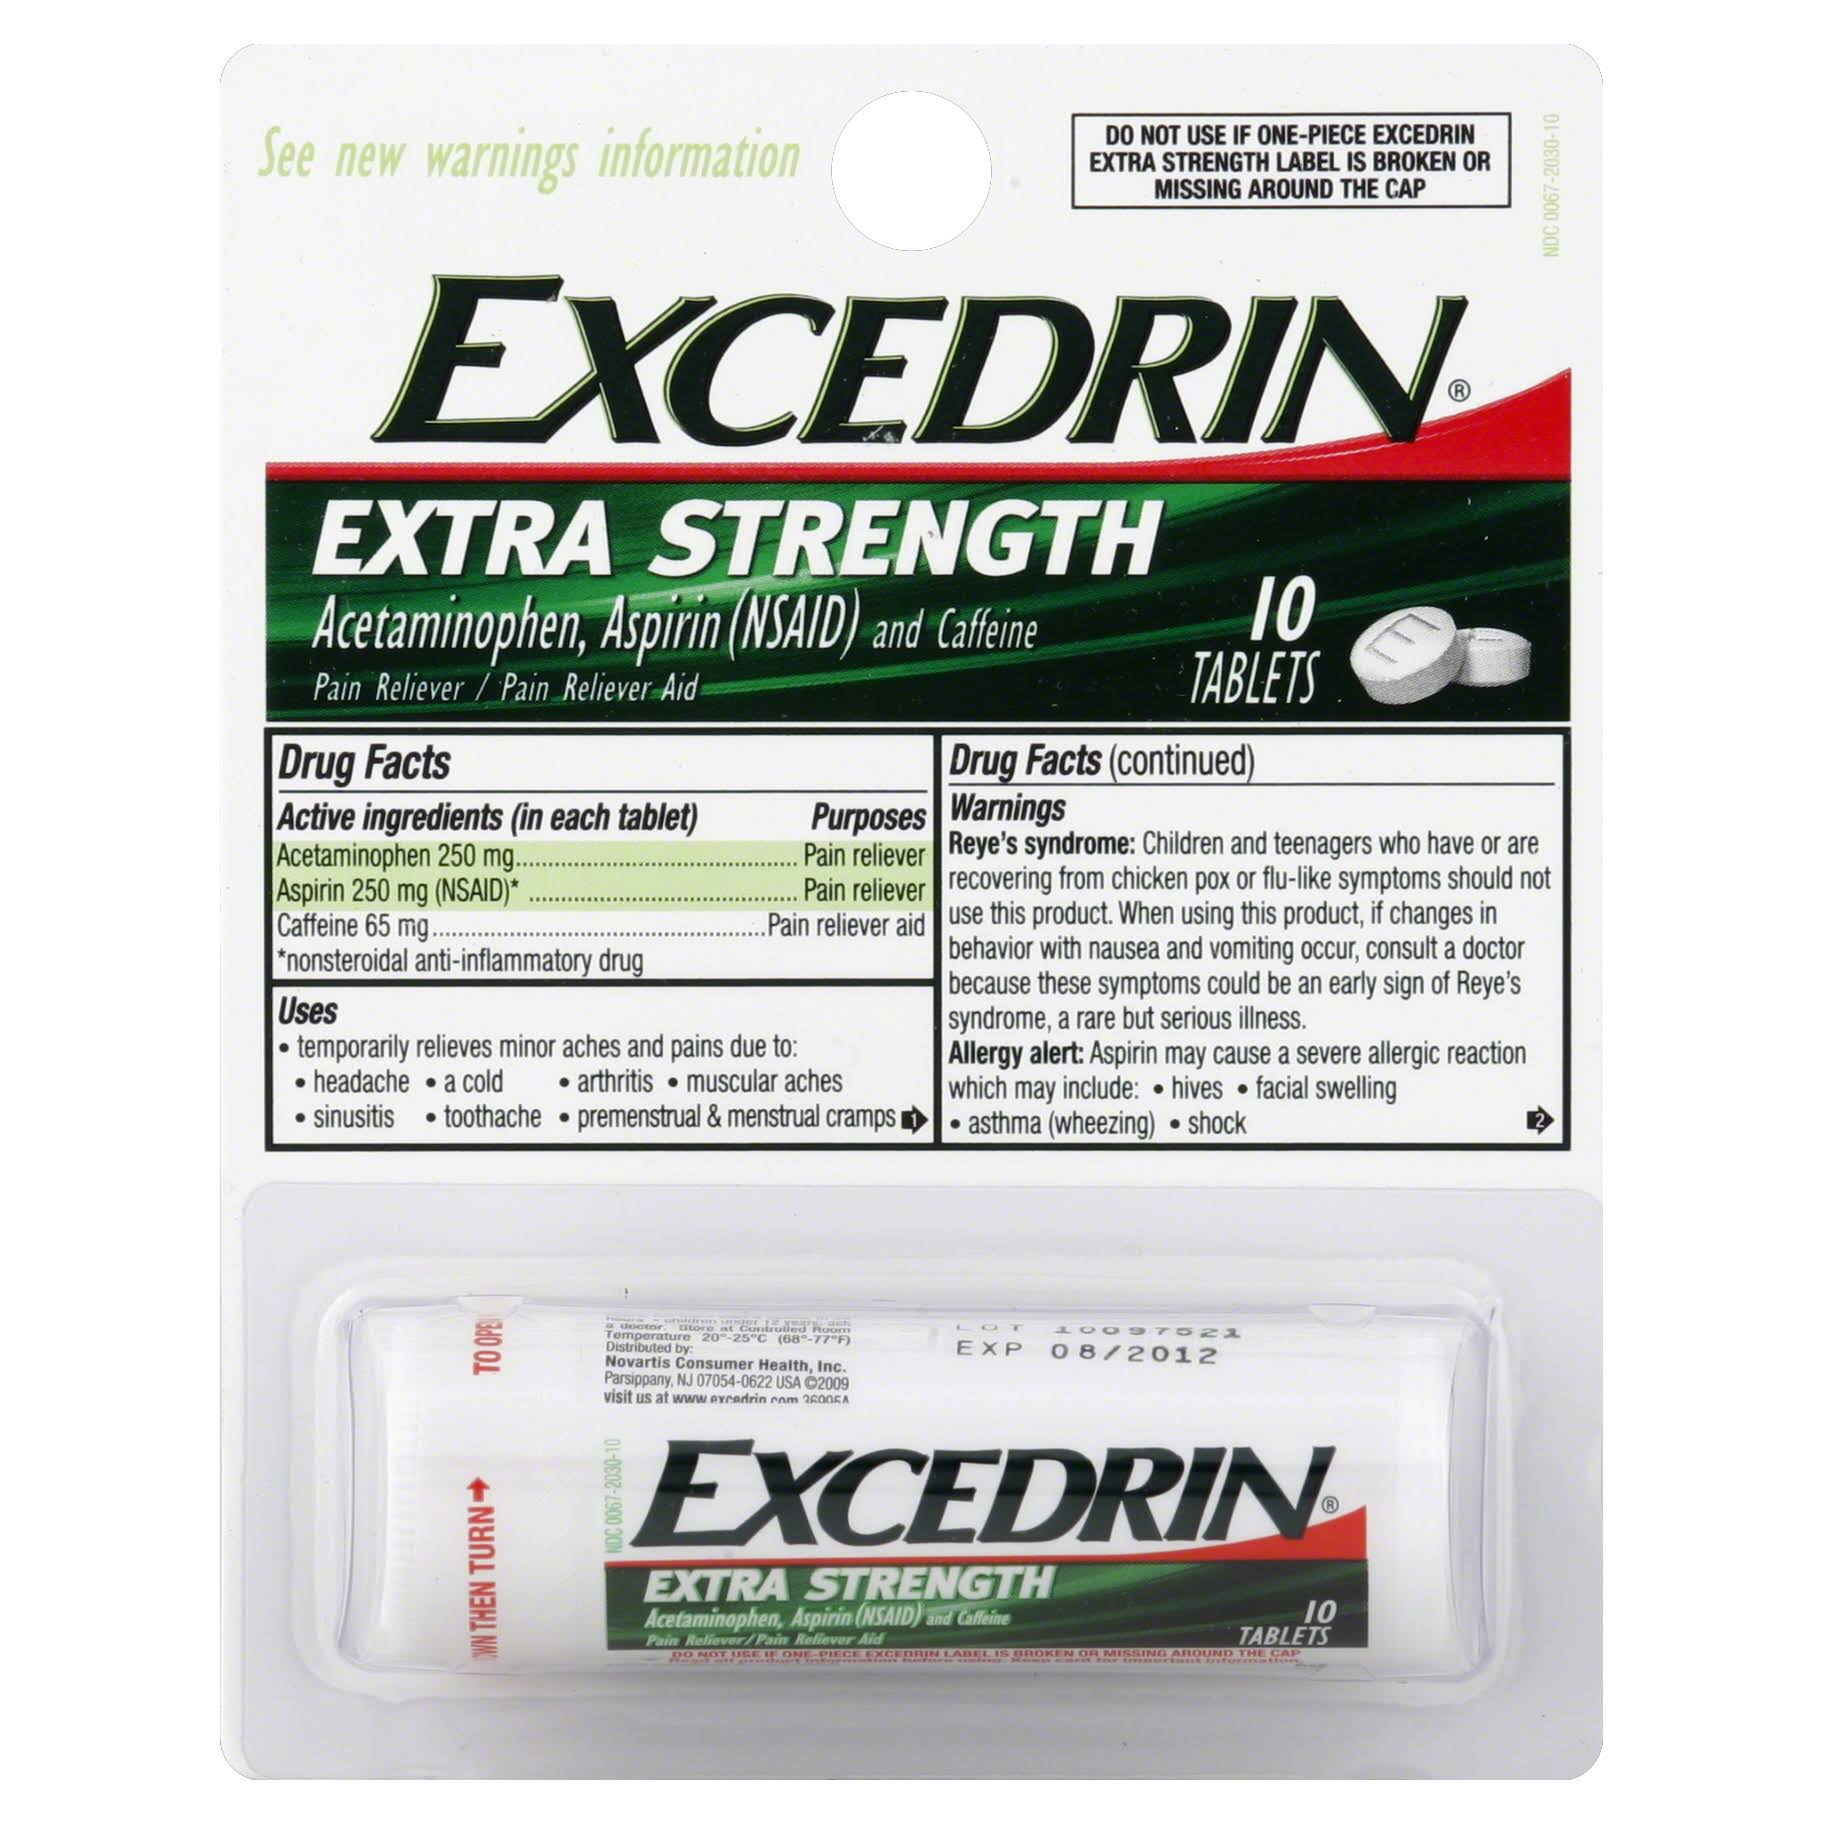 Excedrin Pain Reliever/Pain Reliever Aid Extra Strength Tablets